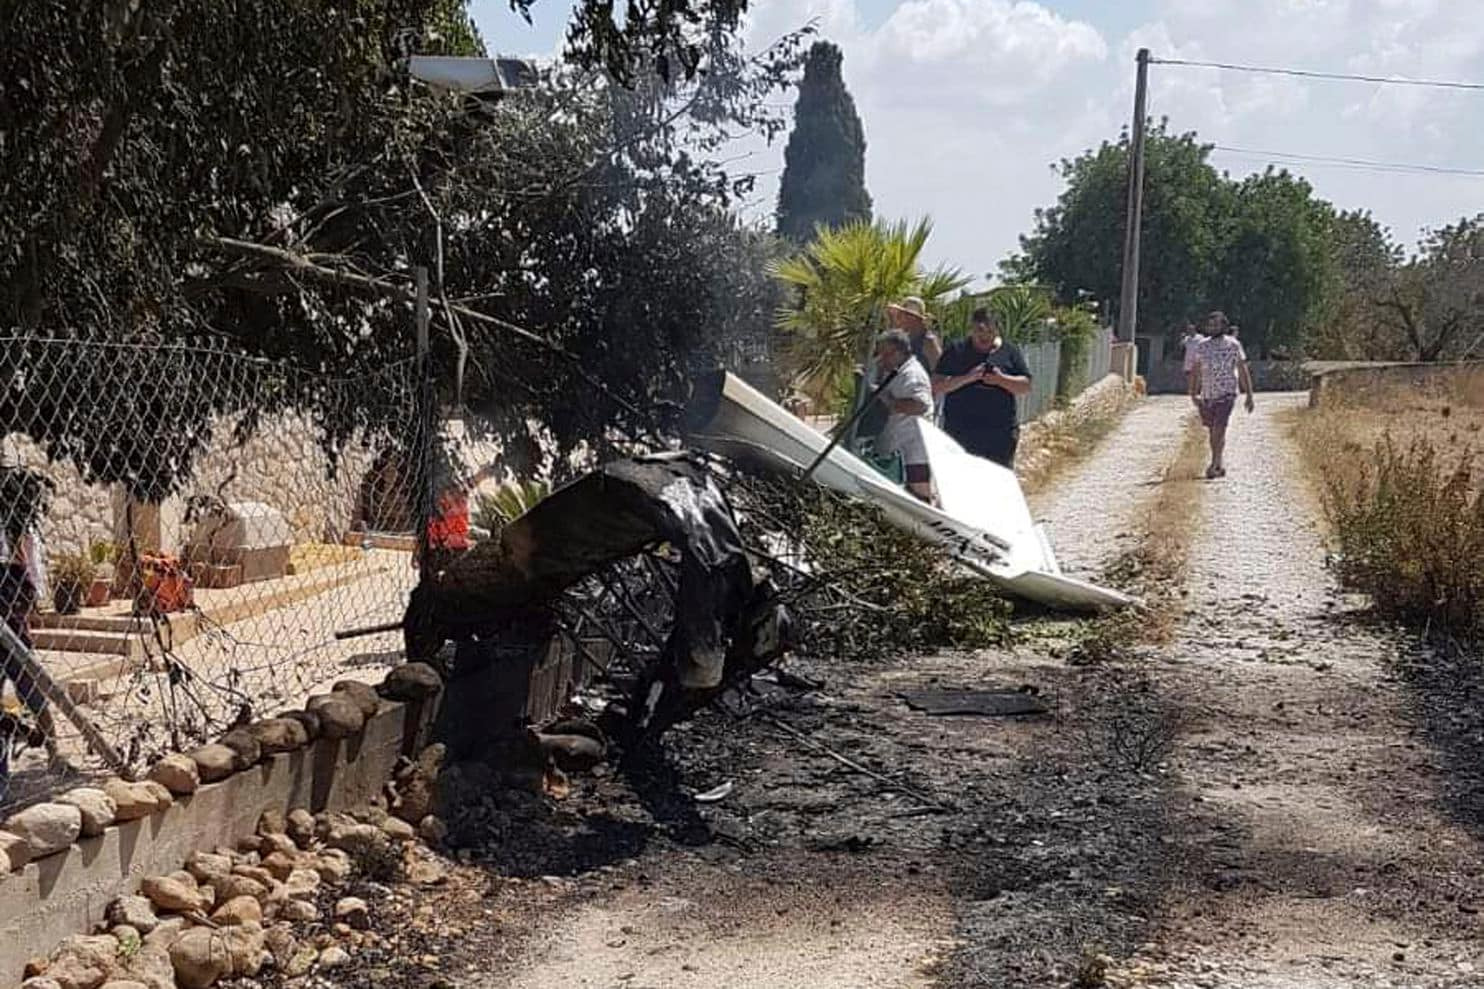 Seven dead in a Bell 206 Helicopter and Aeroprakt A22L Foxbat plane mid-air collision in Majorca